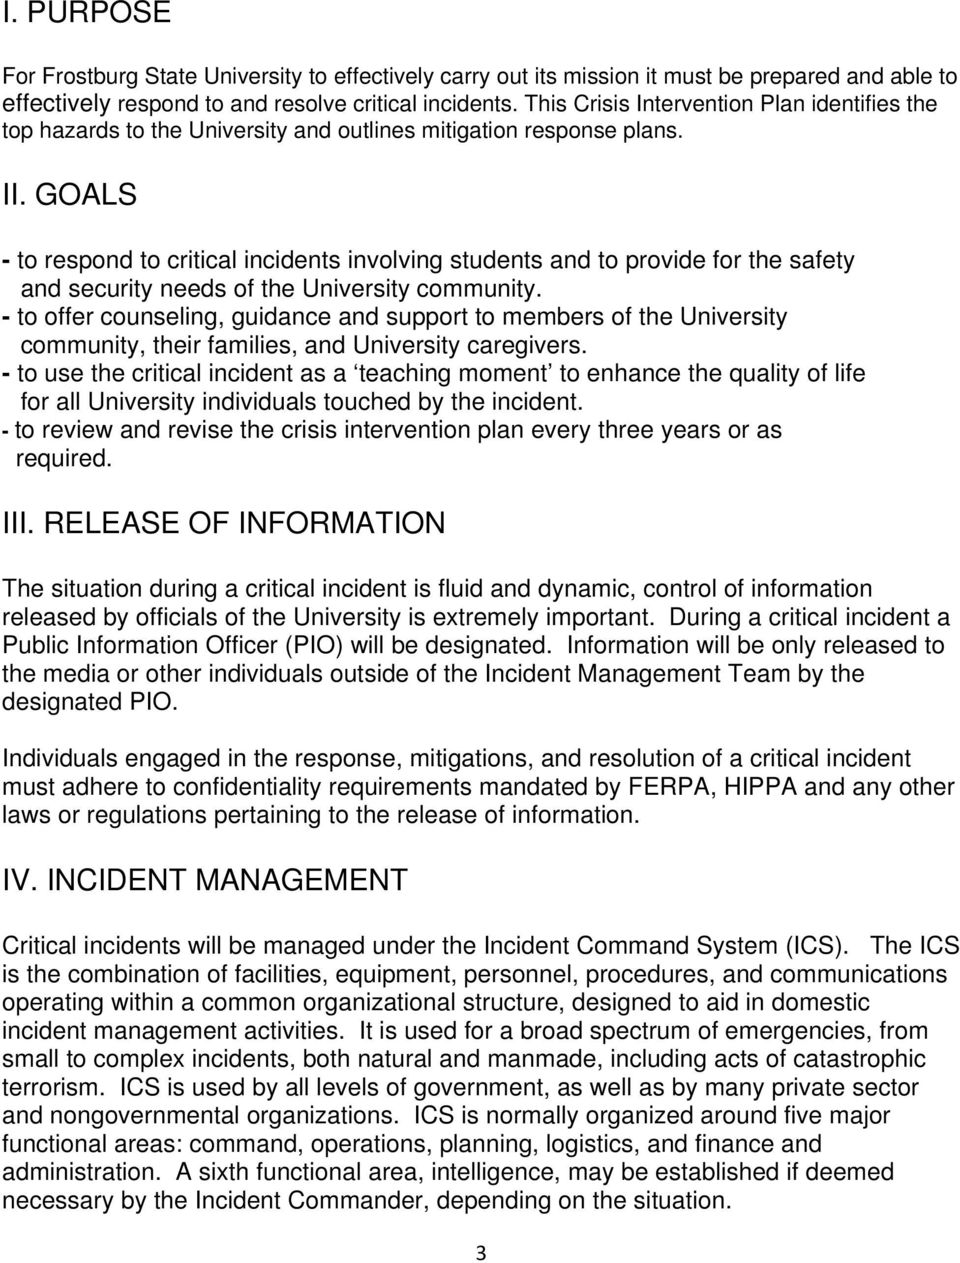 GOALS - to respond to critical incidents involving students and to provide for the safety and security needs of the University community.